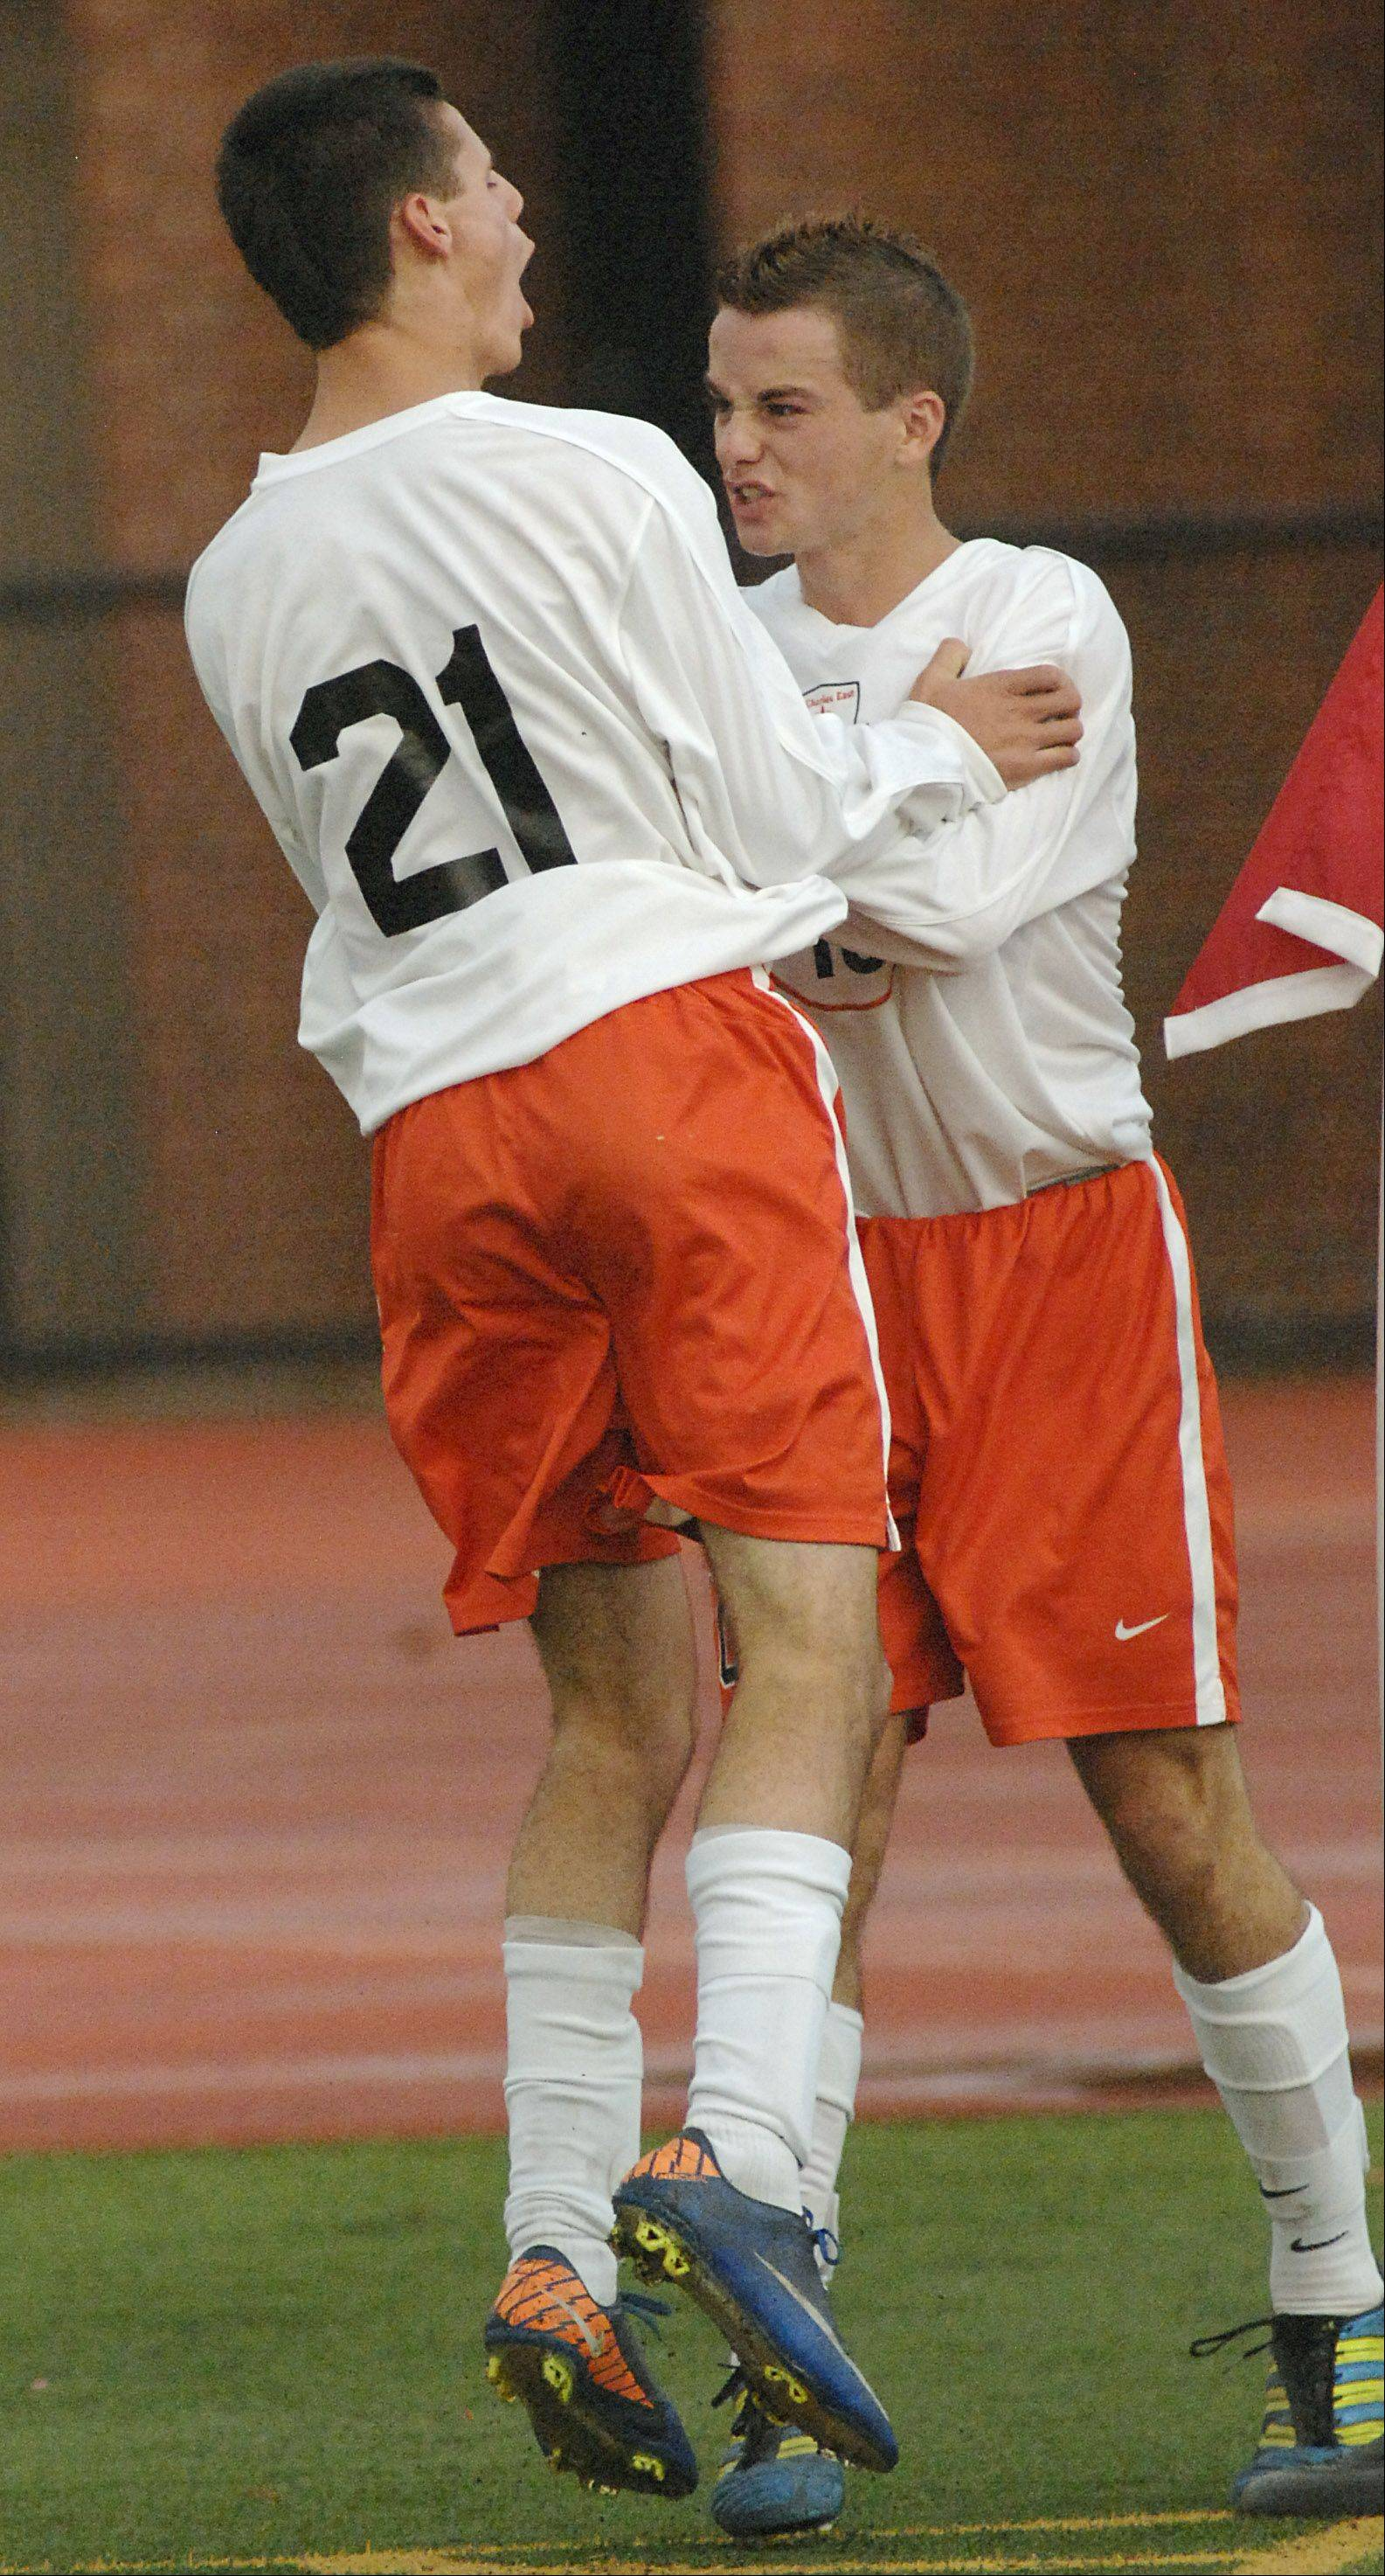 St. Charles East's Daniel DiLeonardi (21) congratulates T.C. Hull on his goal in the first half on Tuesday, October 23.